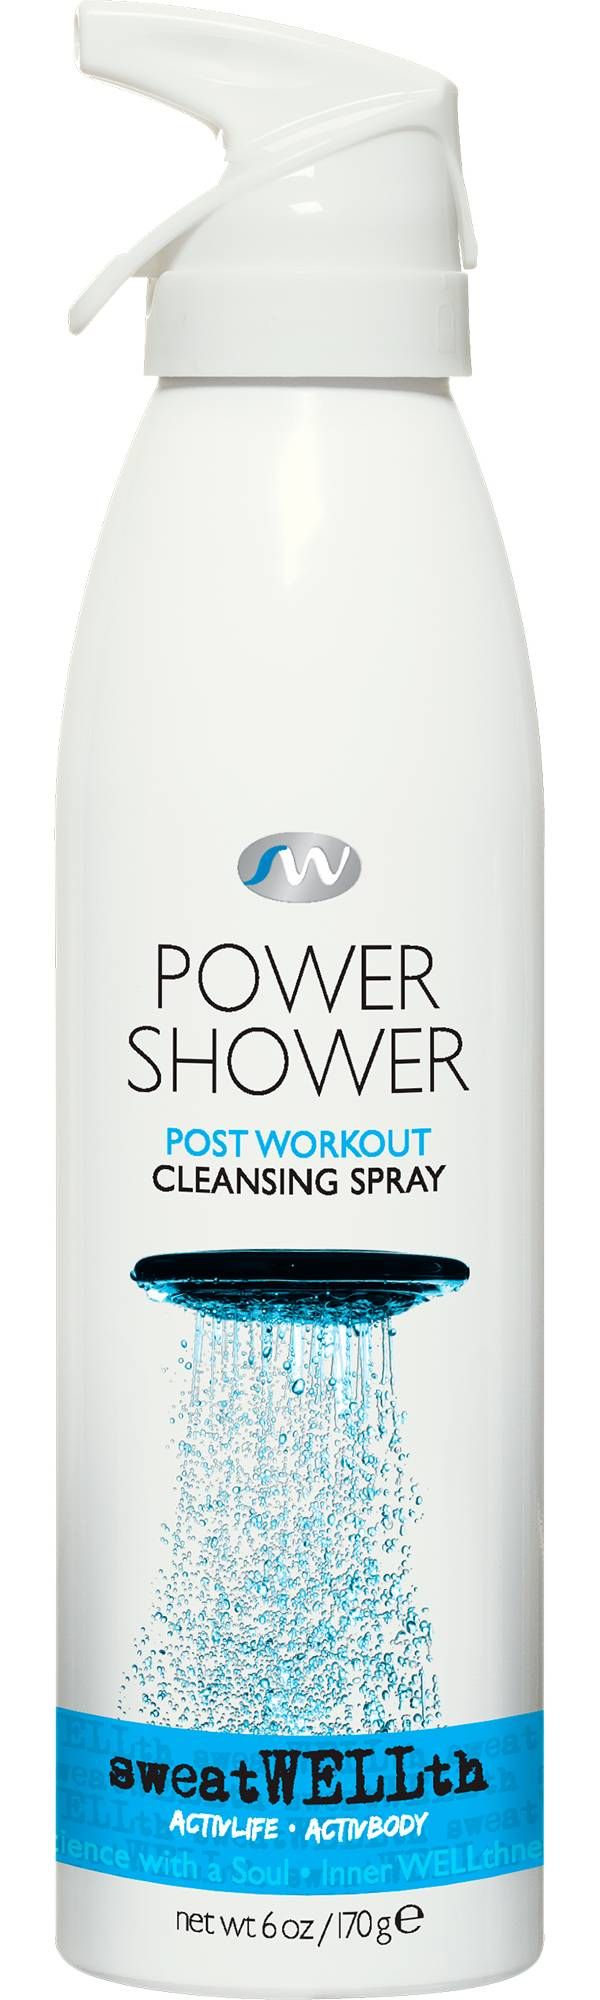 sweatWELLth Power Shower Cleansing Spray product image